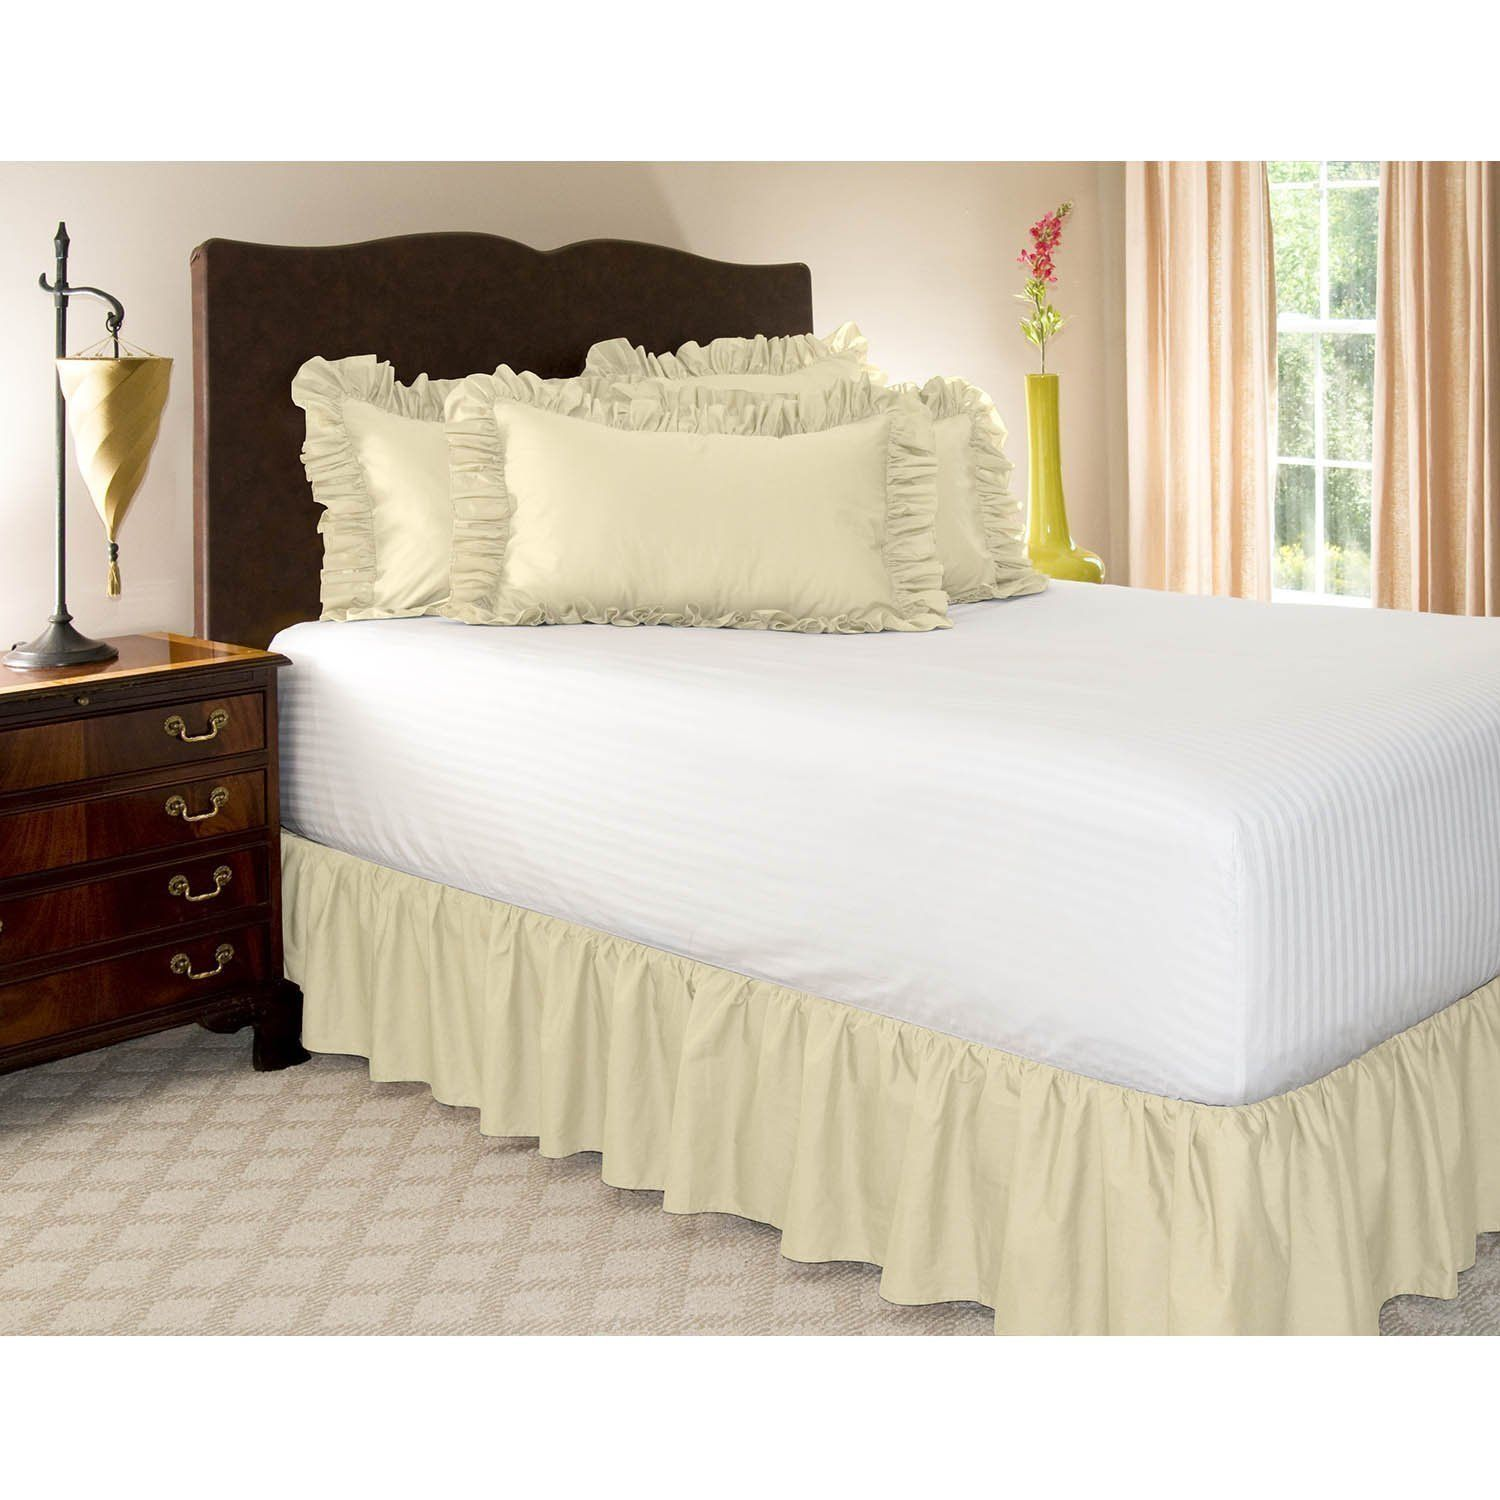 How to Make Bed skirt for Low Profile Box Spring? White